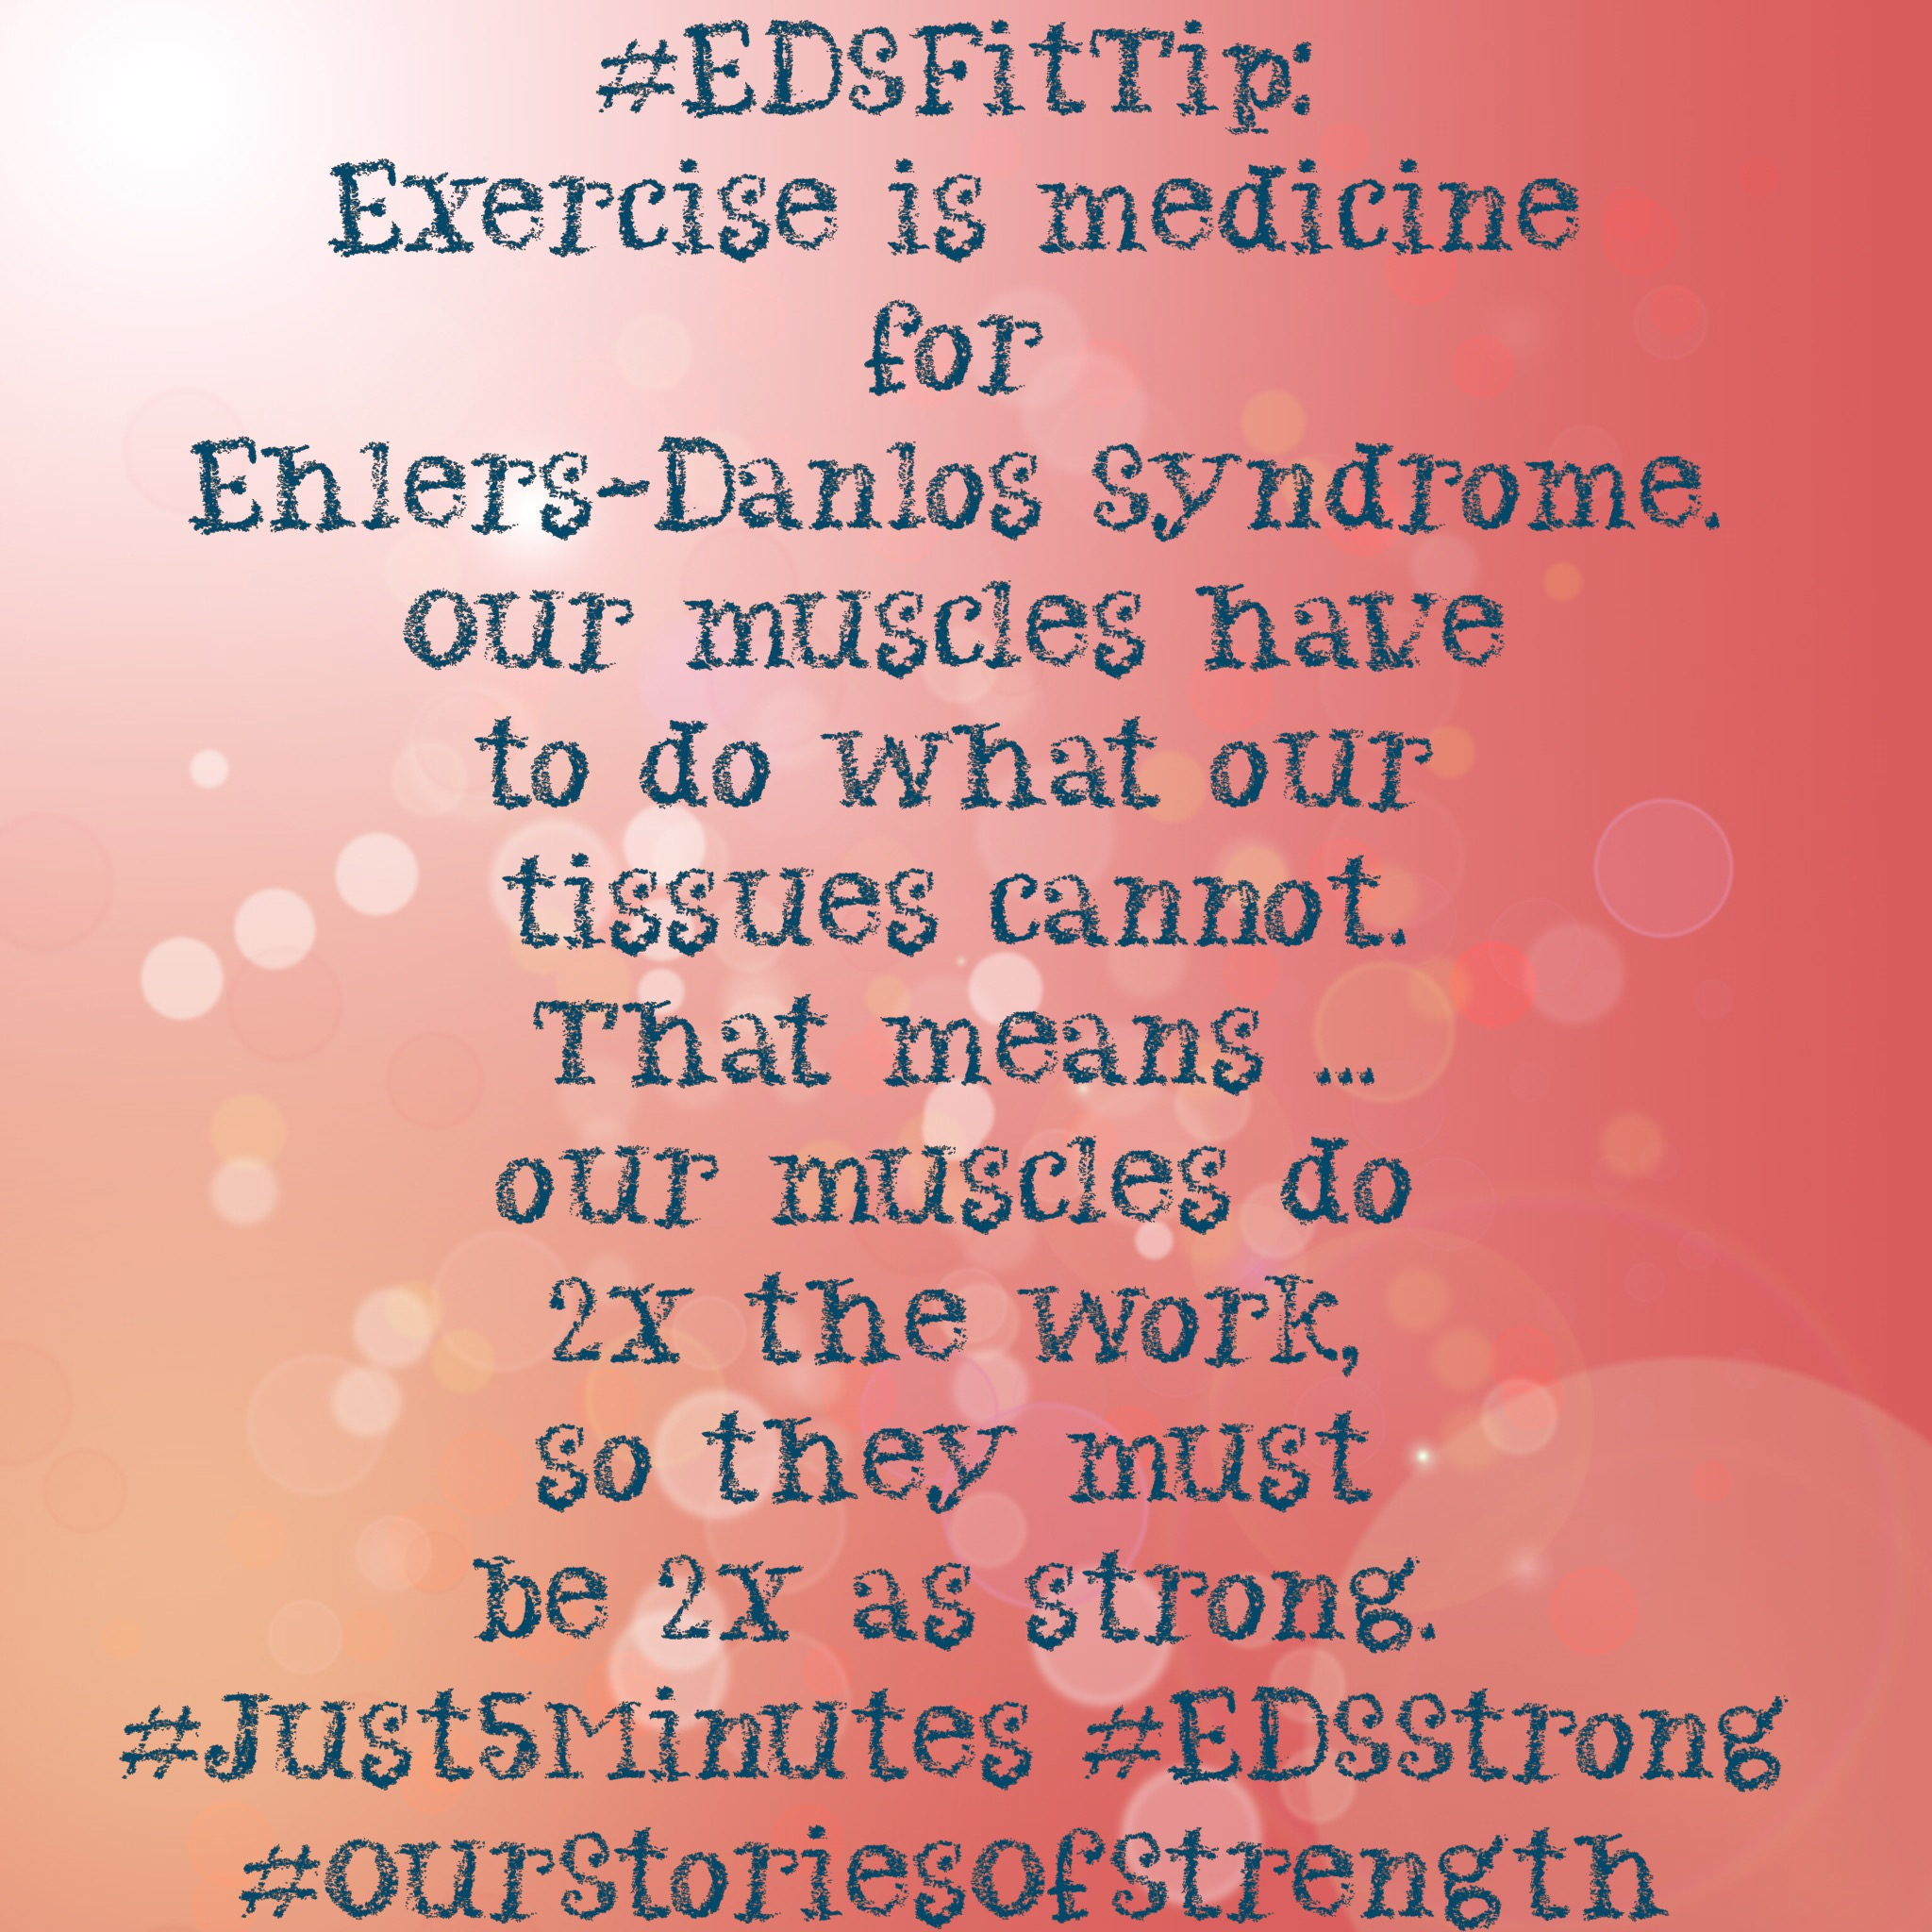 """Exercise is Medicine for Ehlers-Danlos"" – Webinar Summary"